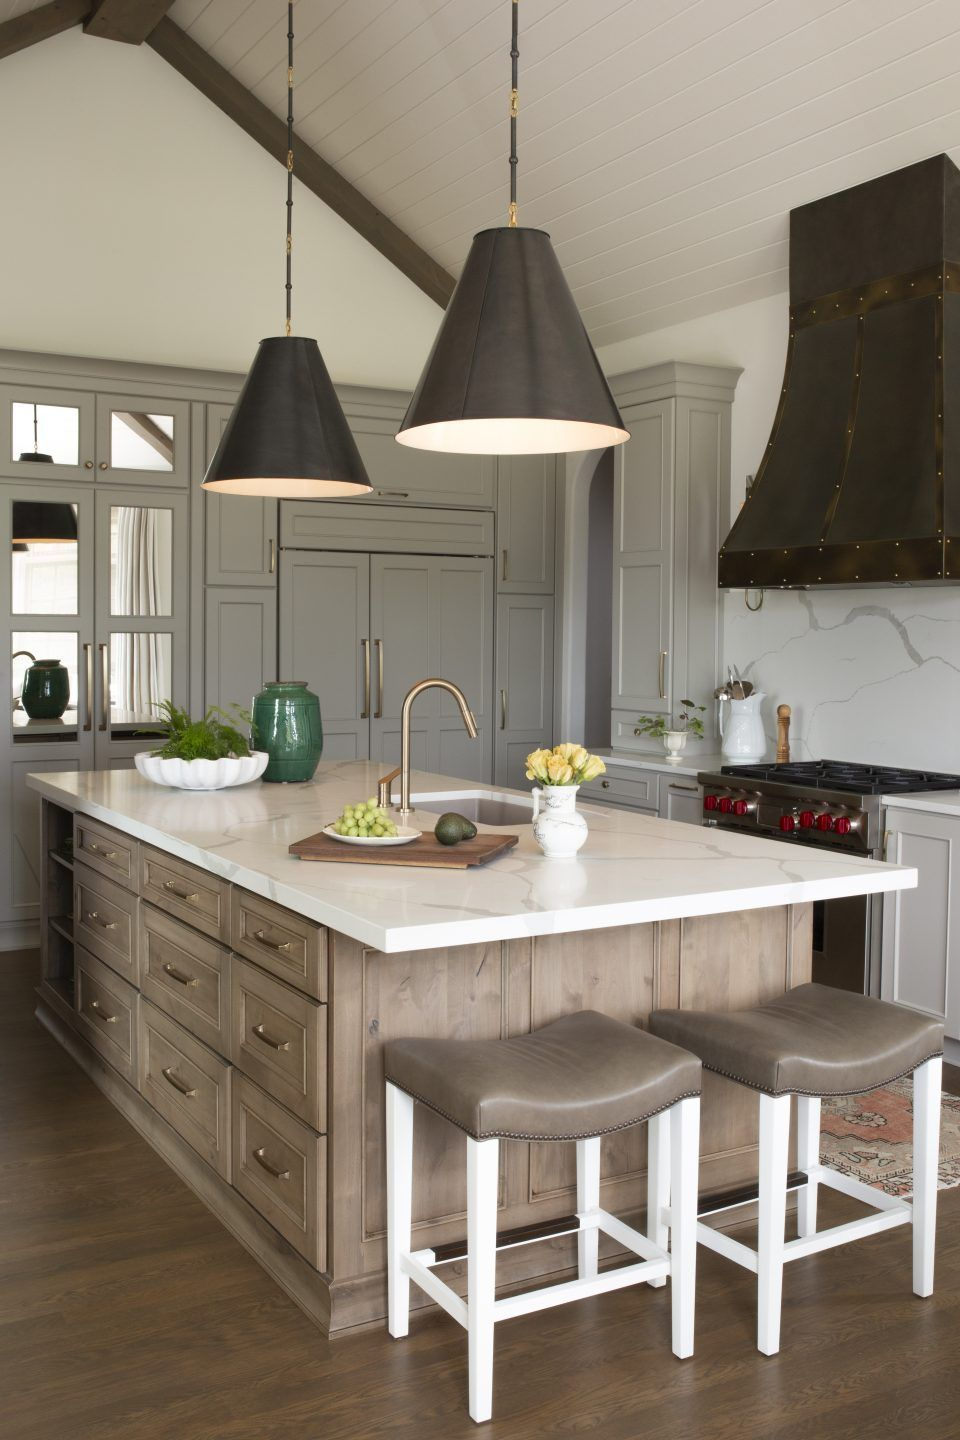 European Kitchen With Staingrade Island And Panted Cabinetry Design By R Cartwright Design Interior Design Kitchen Kitchen Design New Kitchen Cabinets